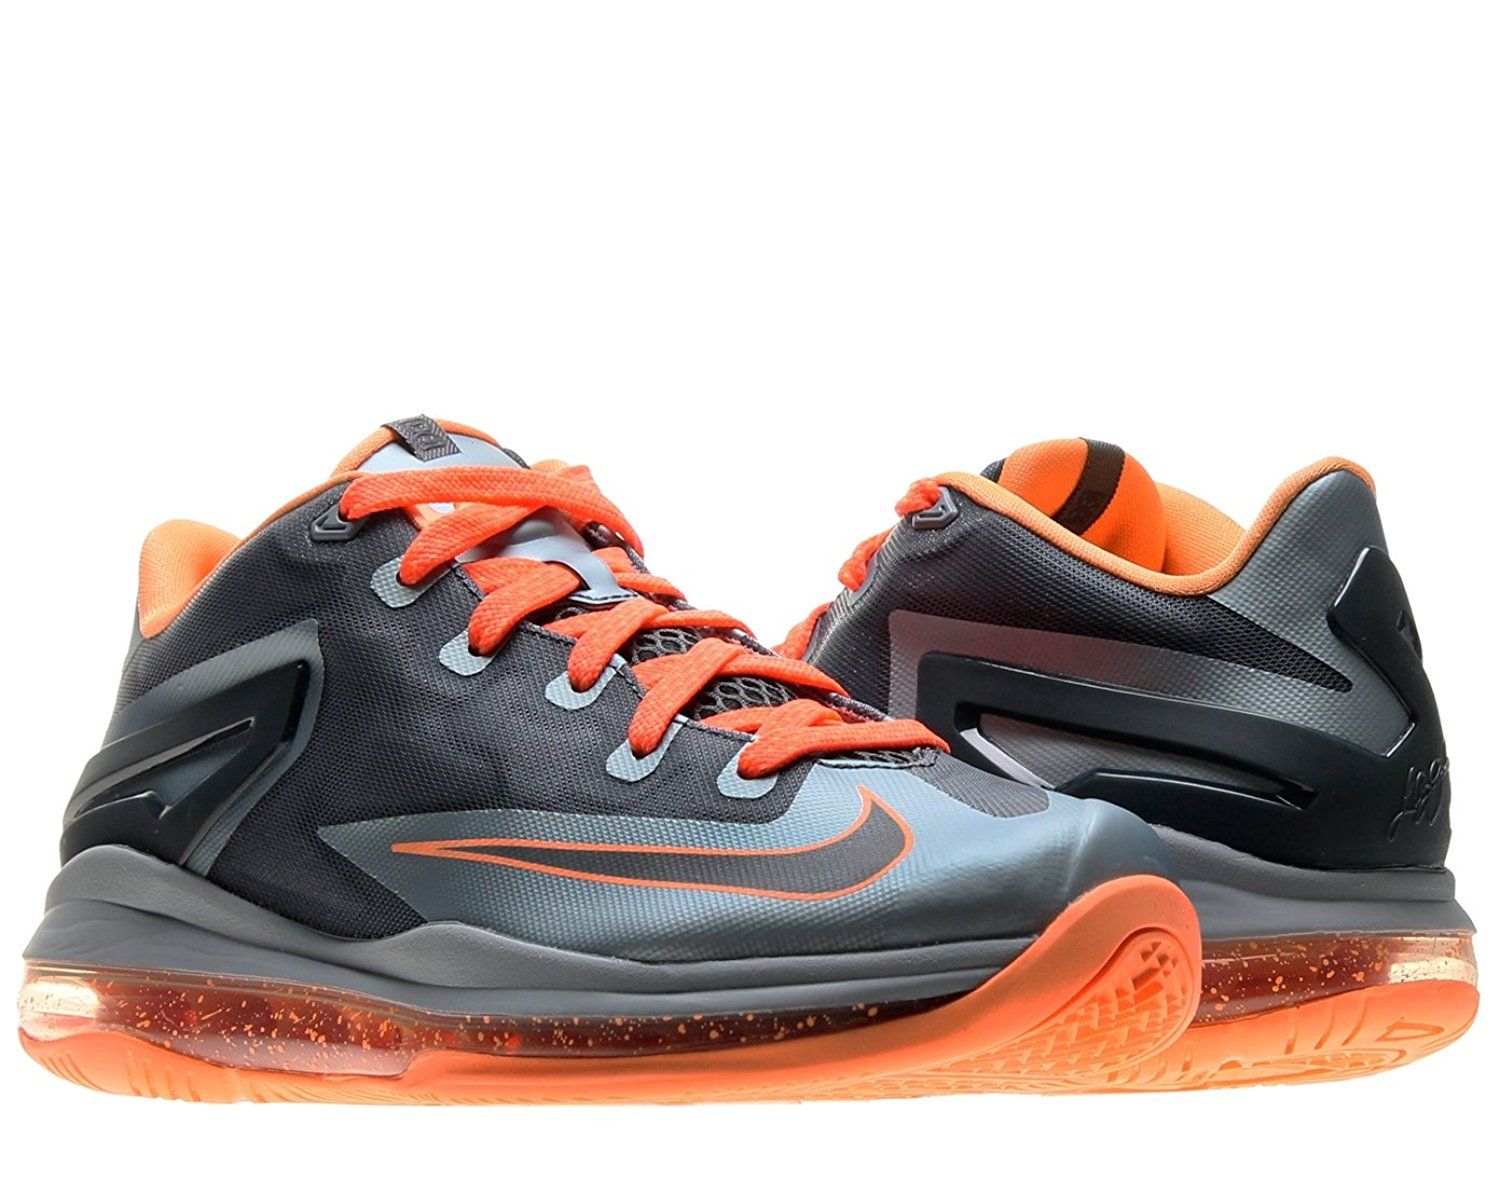 2c1a0ebf02e4 Get Quotations · Nike Air Max Lebron XI Low (GS) Boys Basketball Shoes